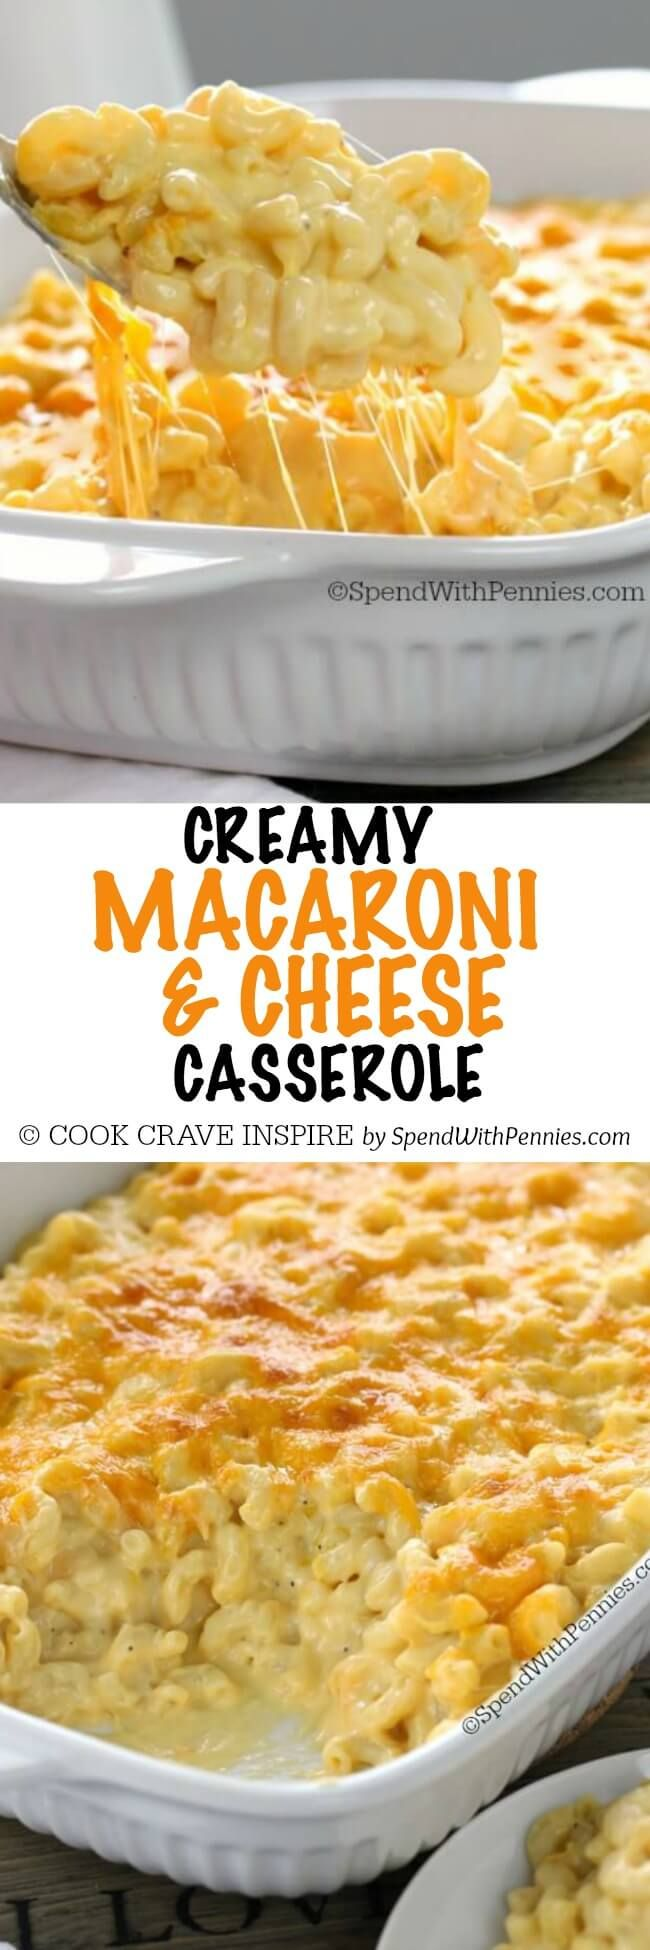 This Creamy Macaroni and Cheese Casserole - should be easy to adapt to gf if I can find condensed cream of cheddar soup